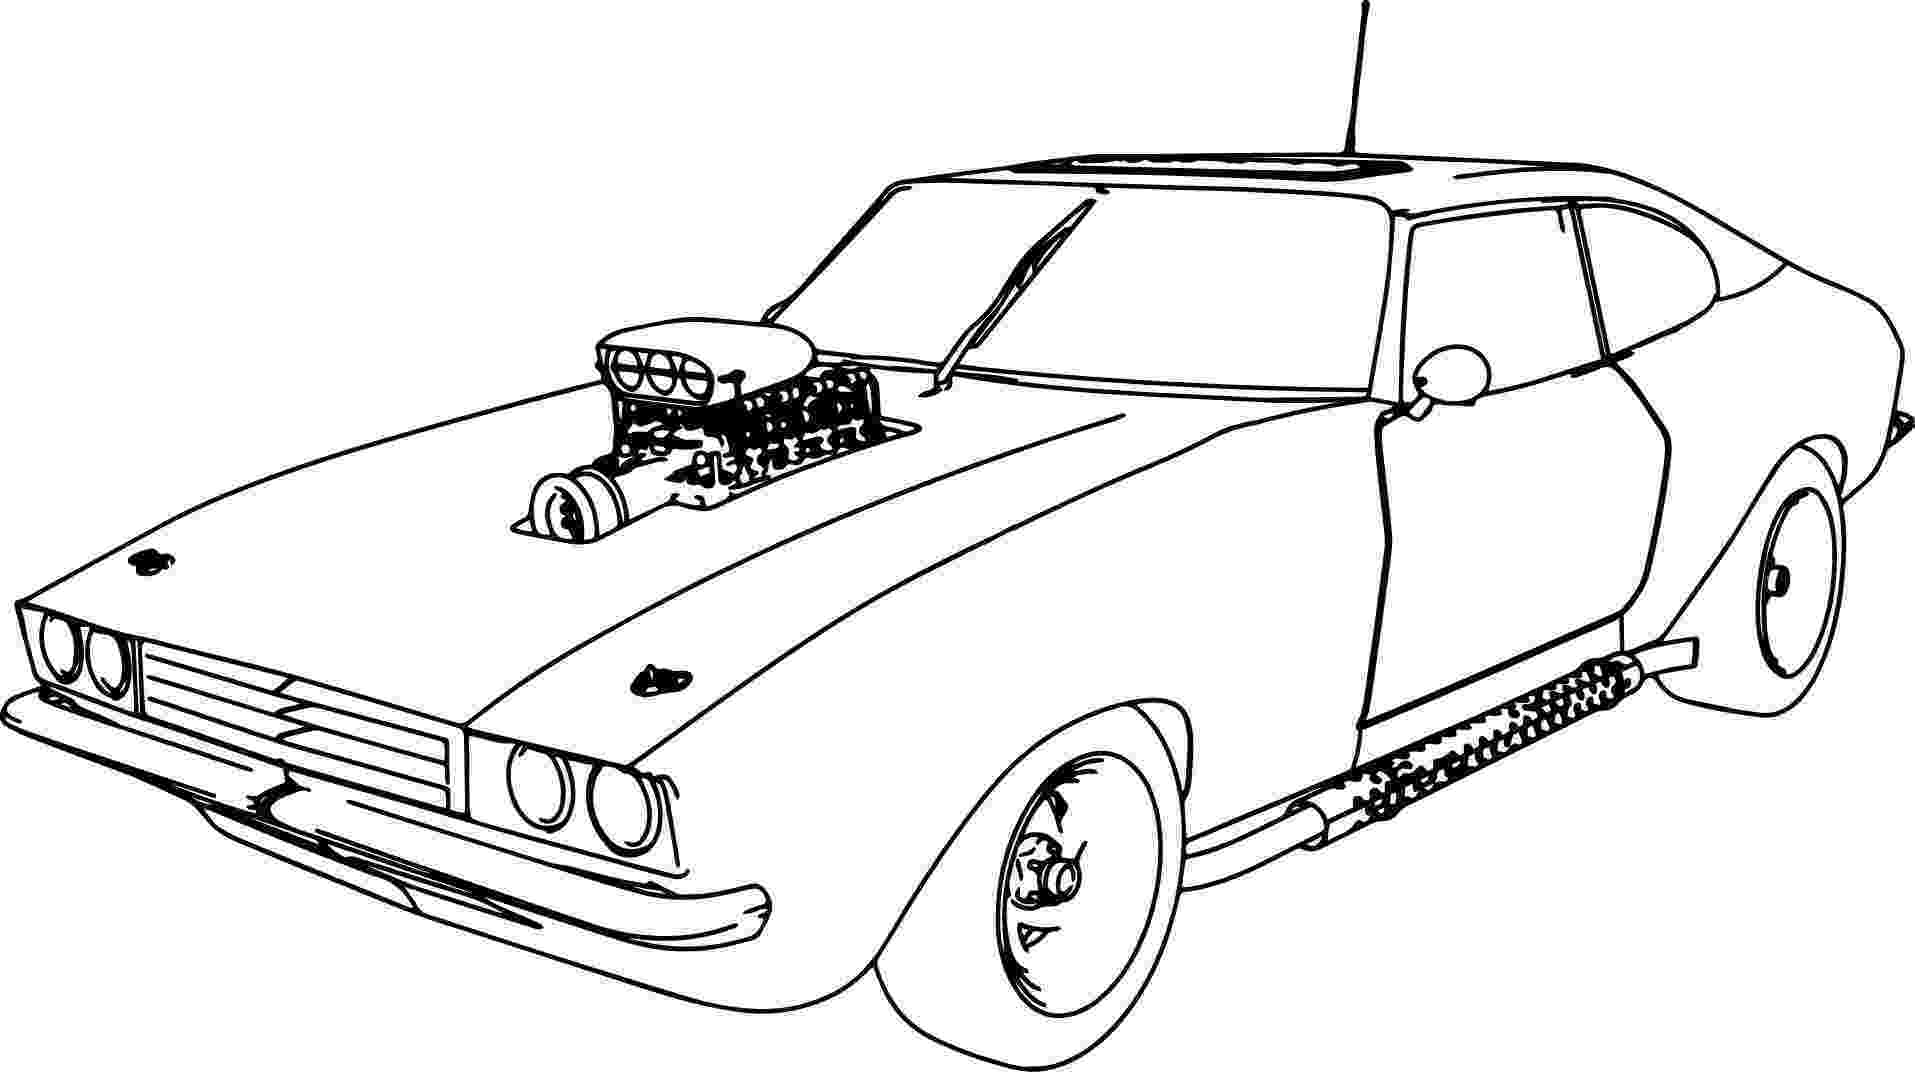 coloring pages muscle cars muscle car coloring pages to download and print for free pages coloring cars muscle 1 2